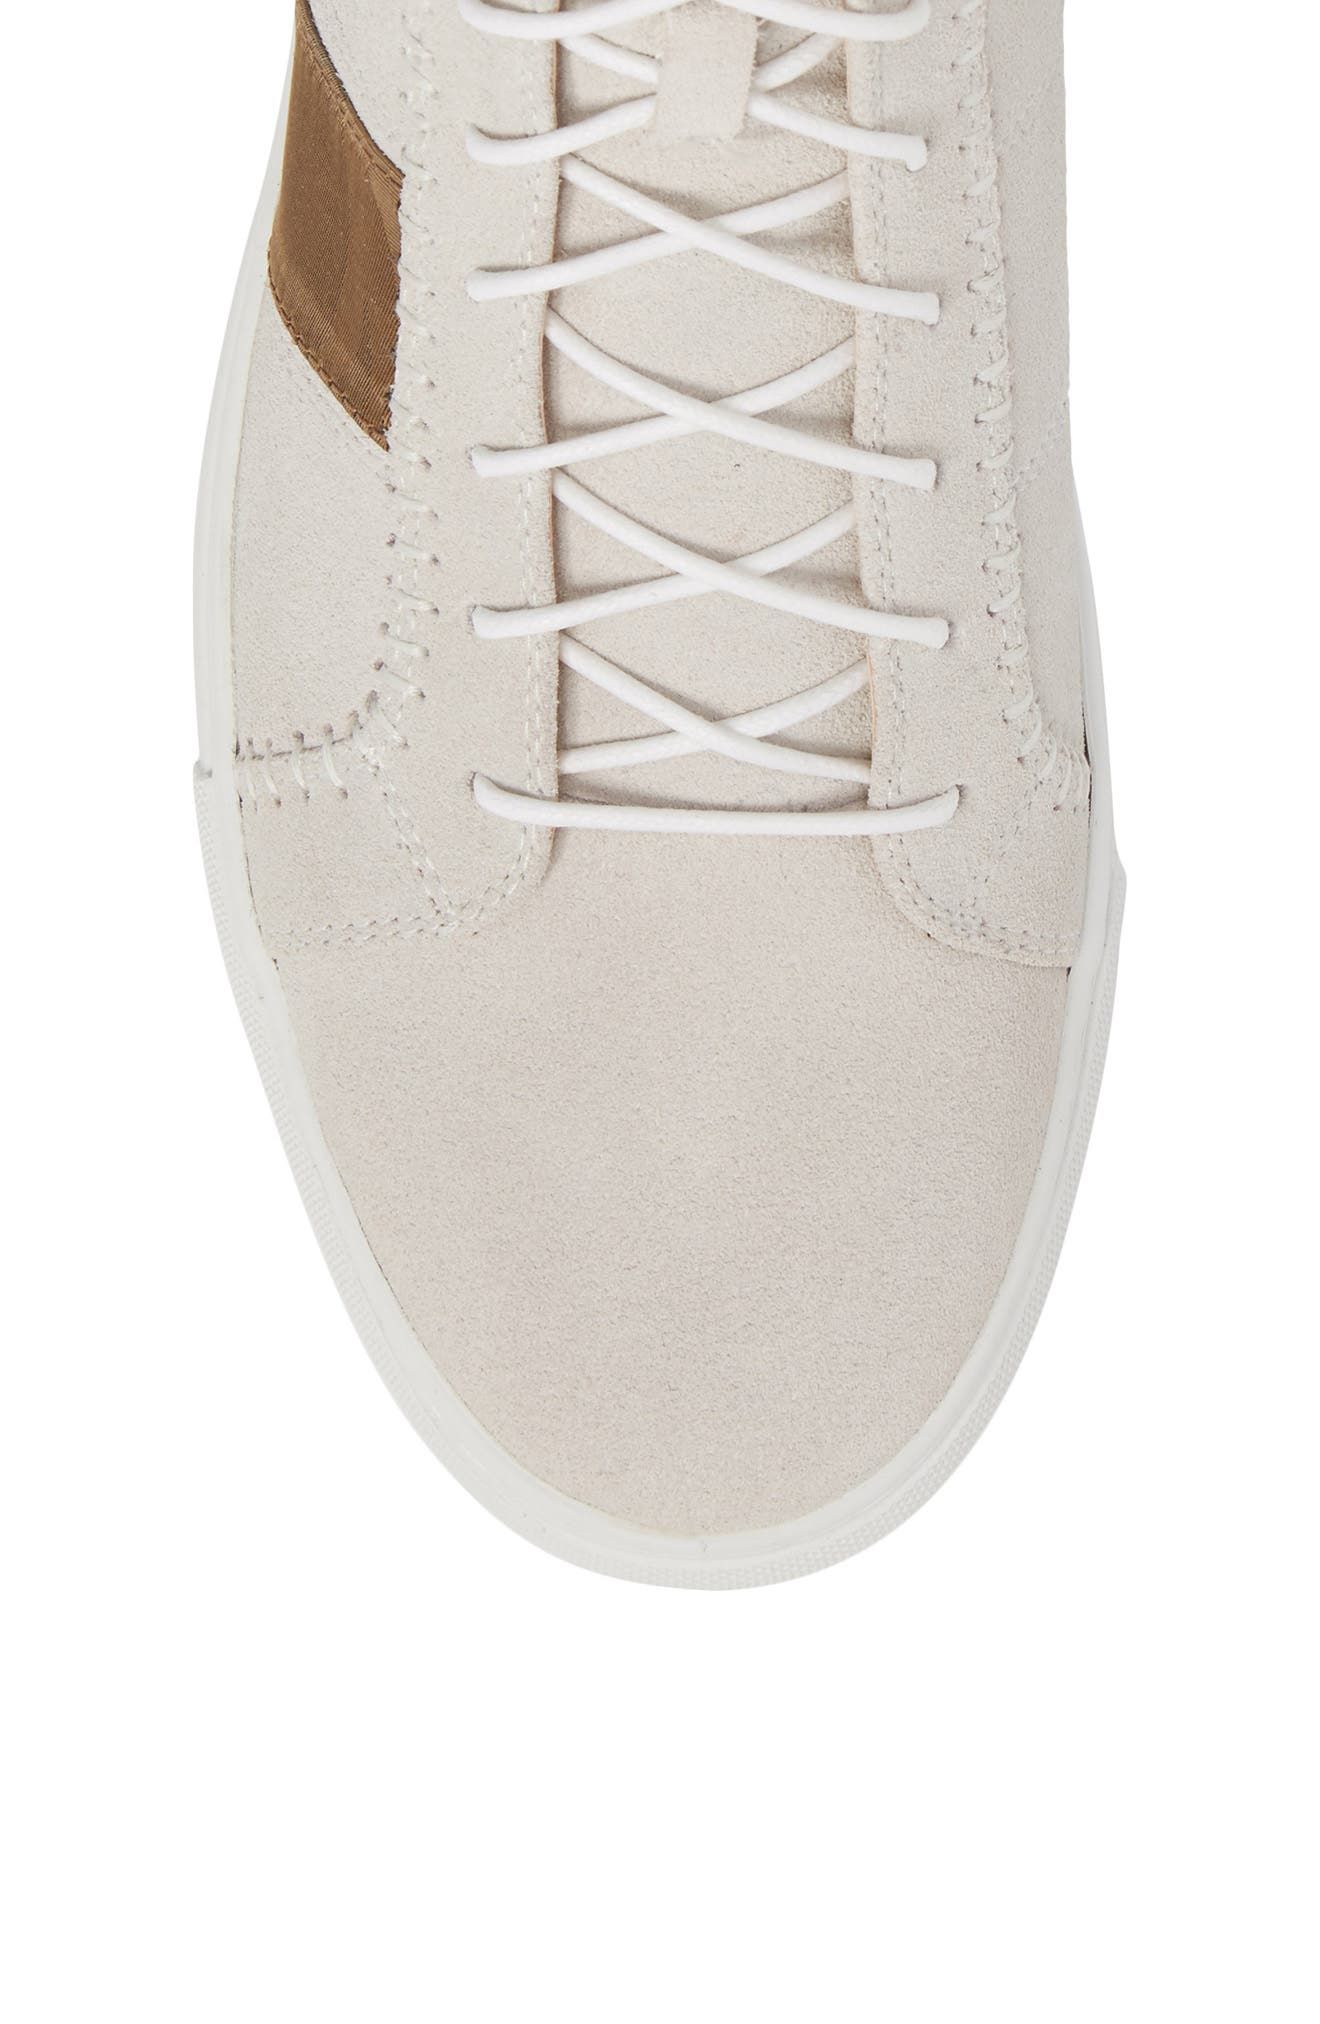 High Top Sneaker,                             Alternate thumbnail 5, color,                             White Suede